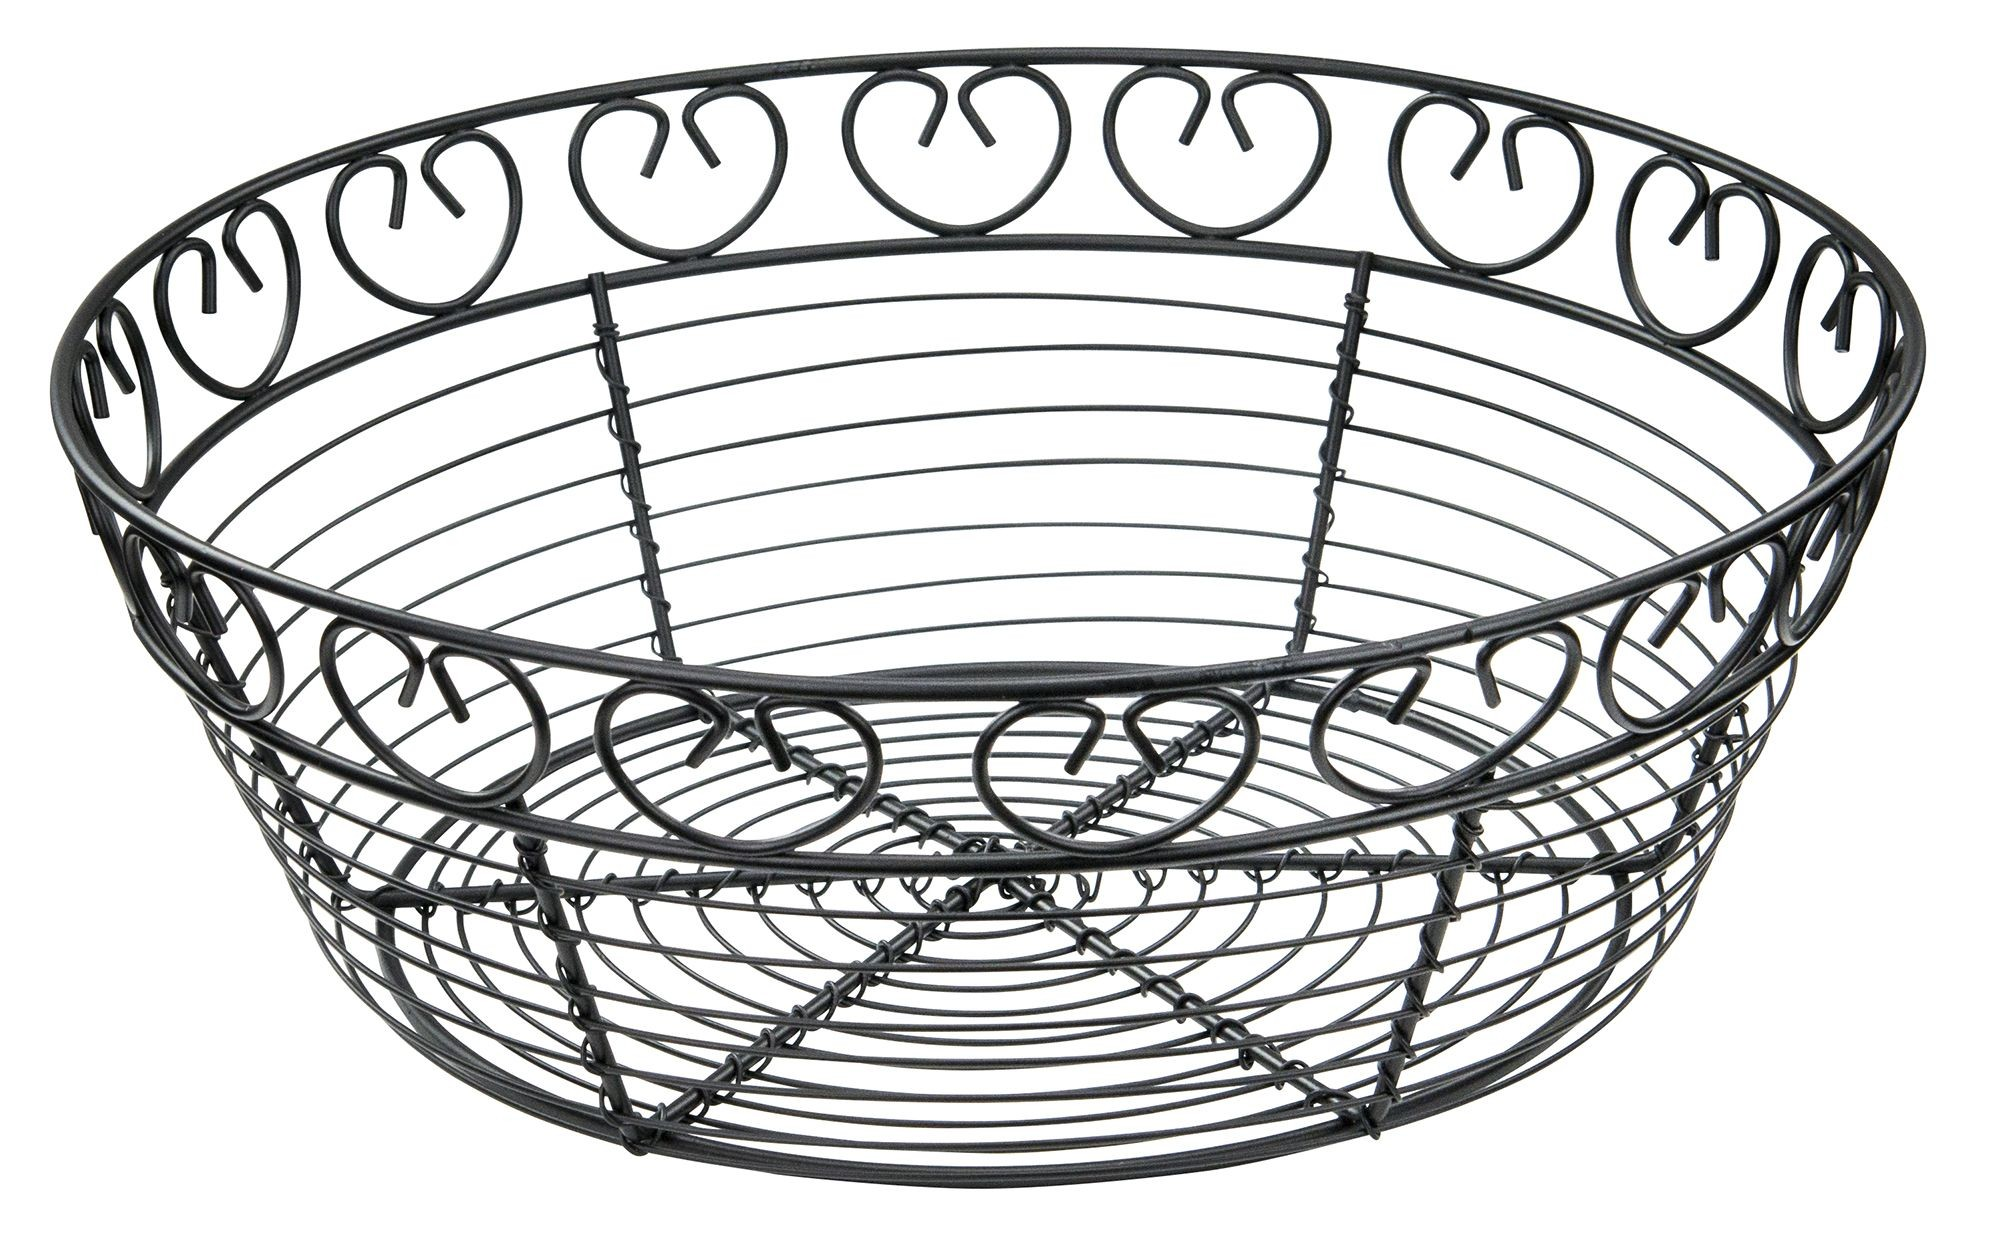 Winco wbkg-10r Round Black Metal Wire Bread Basket 10""